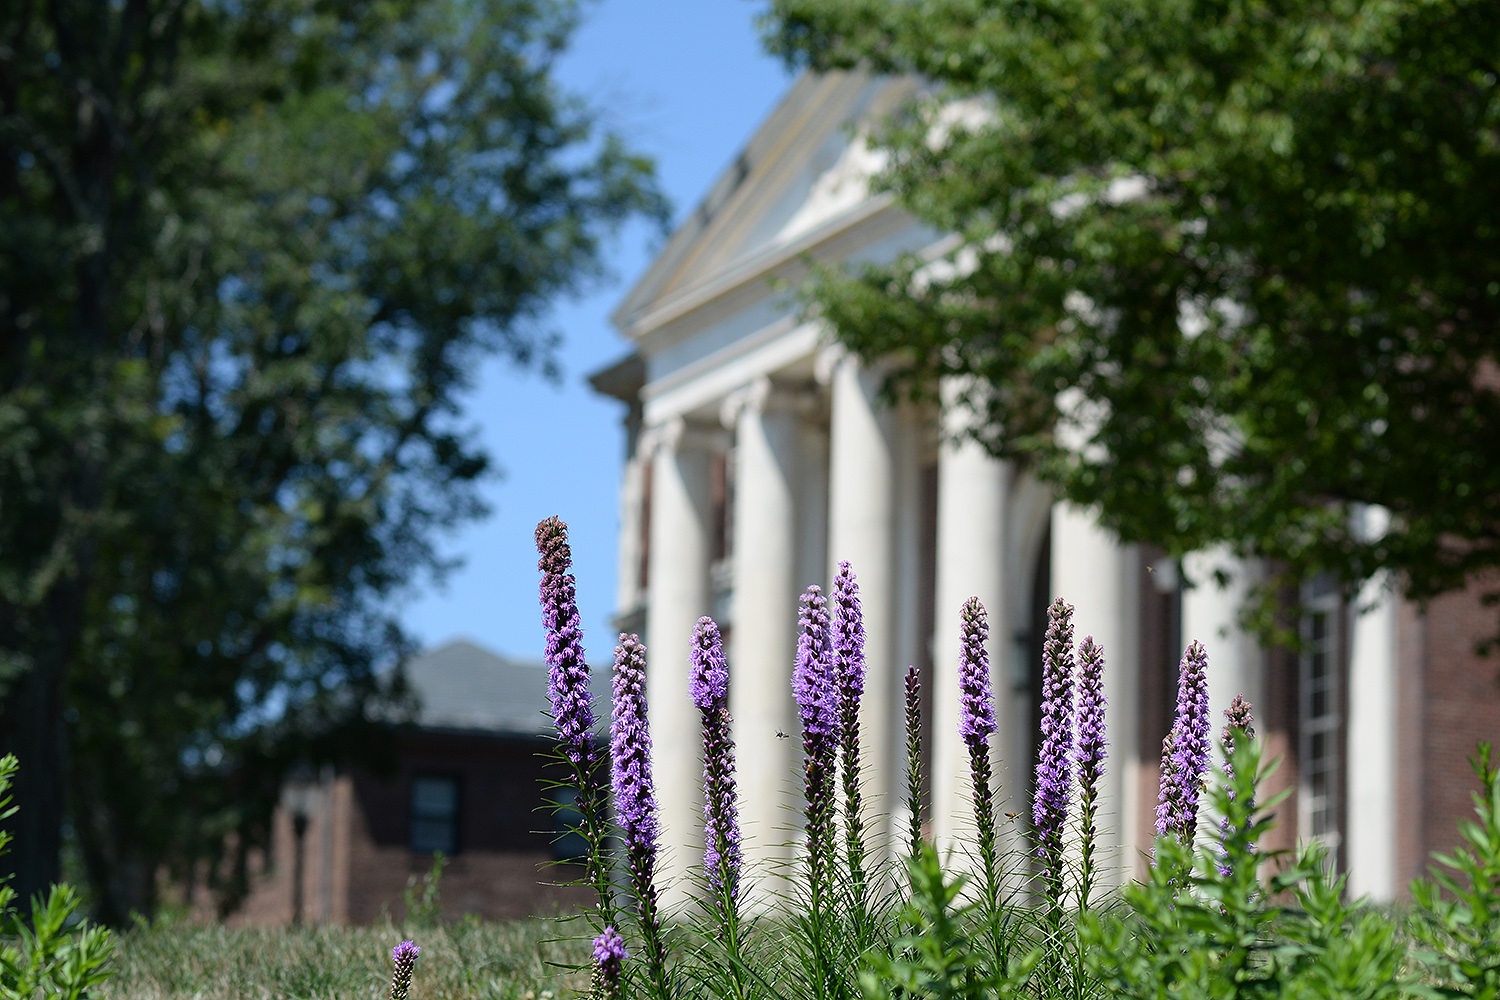 Purple laitris mimic the pillars of Olin Library.